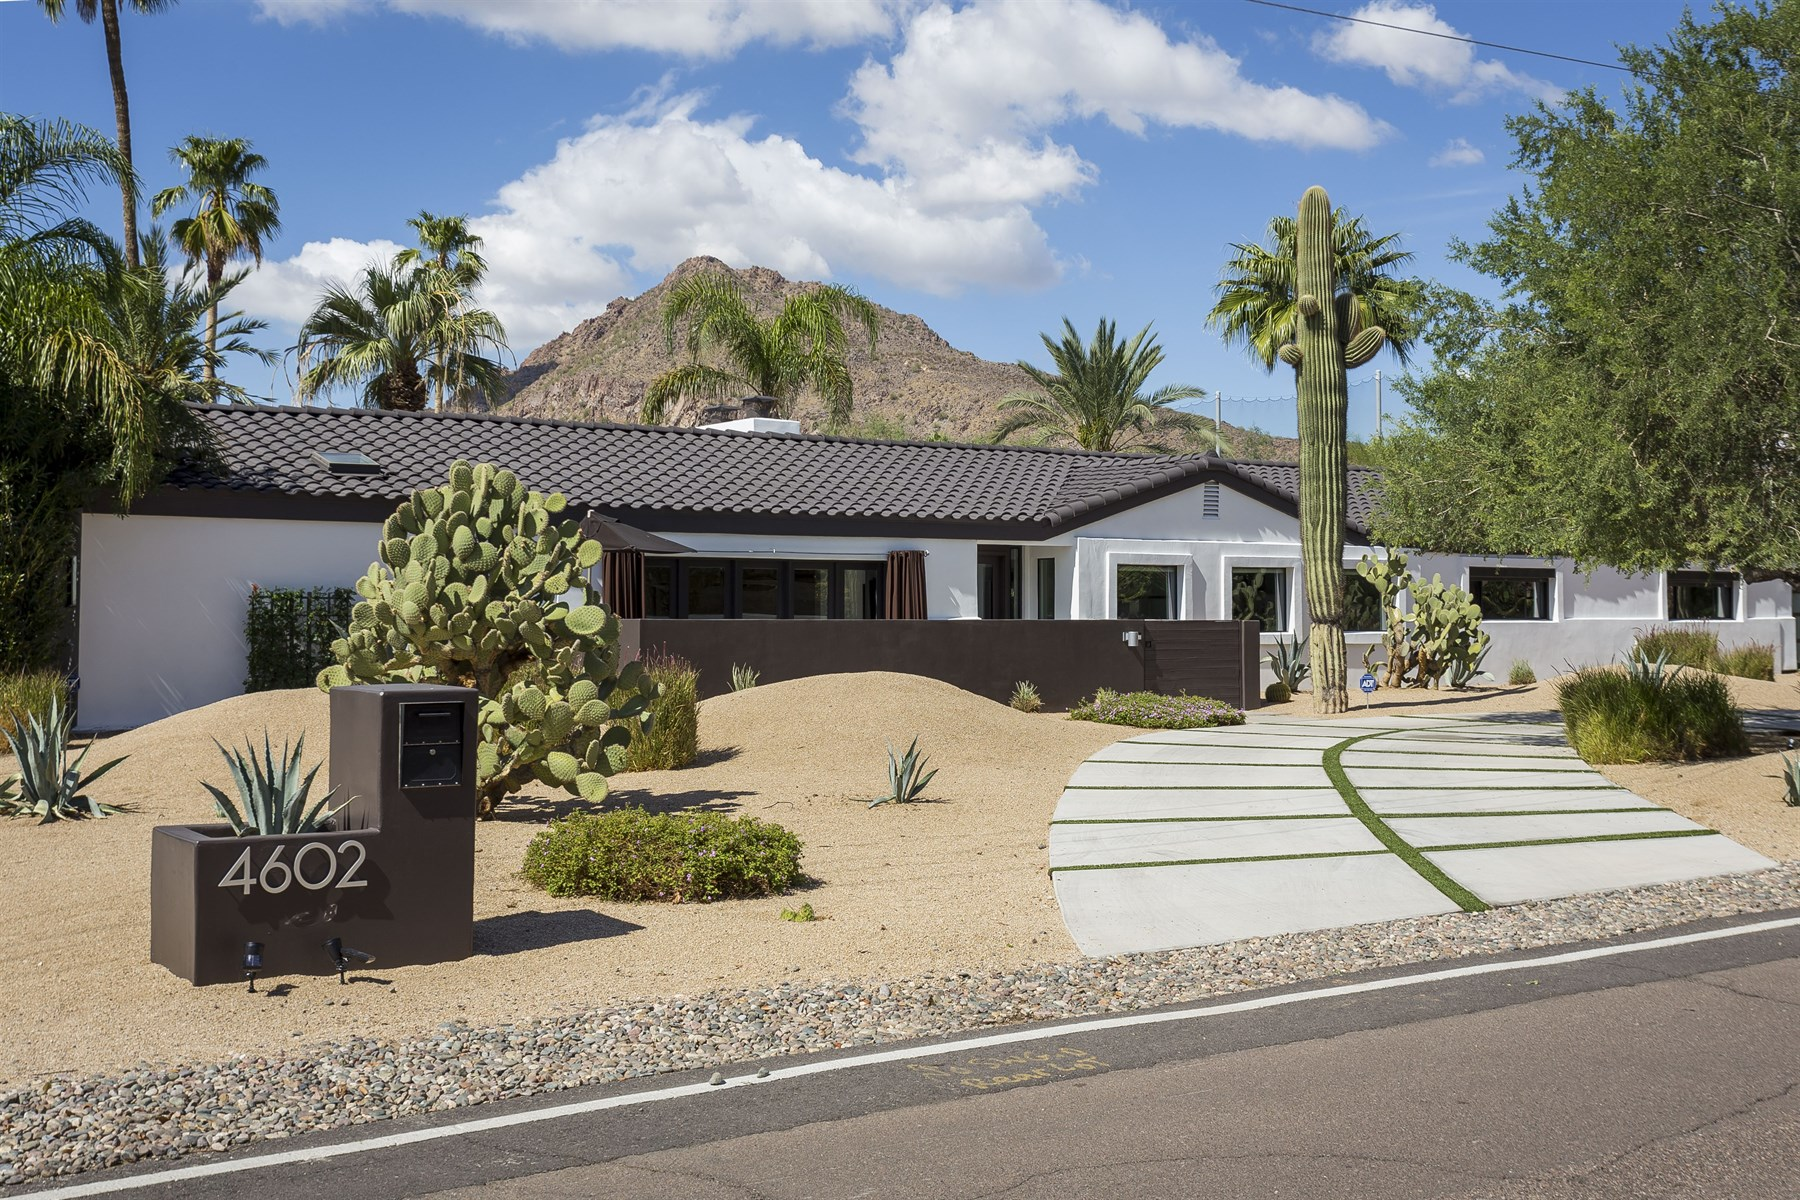 Property For Sale at Gorgeous estate on over an acre in arcadia near old town scottsdale